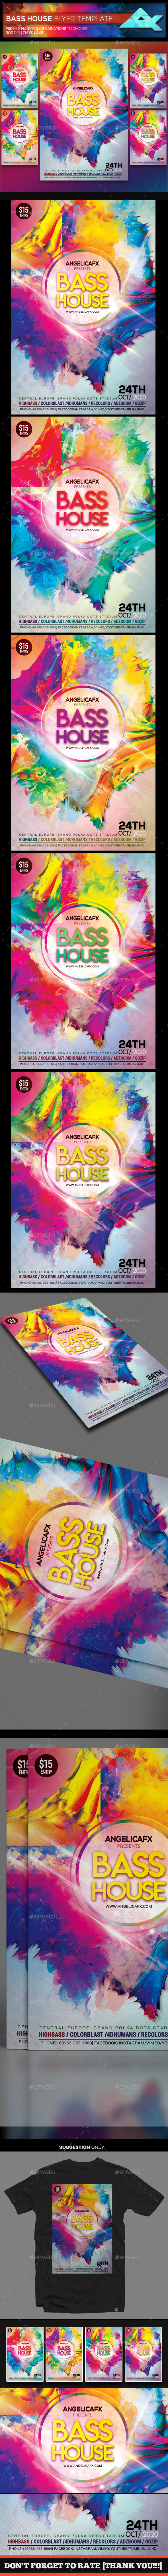 Bass House Flyer Template - Events Flyers